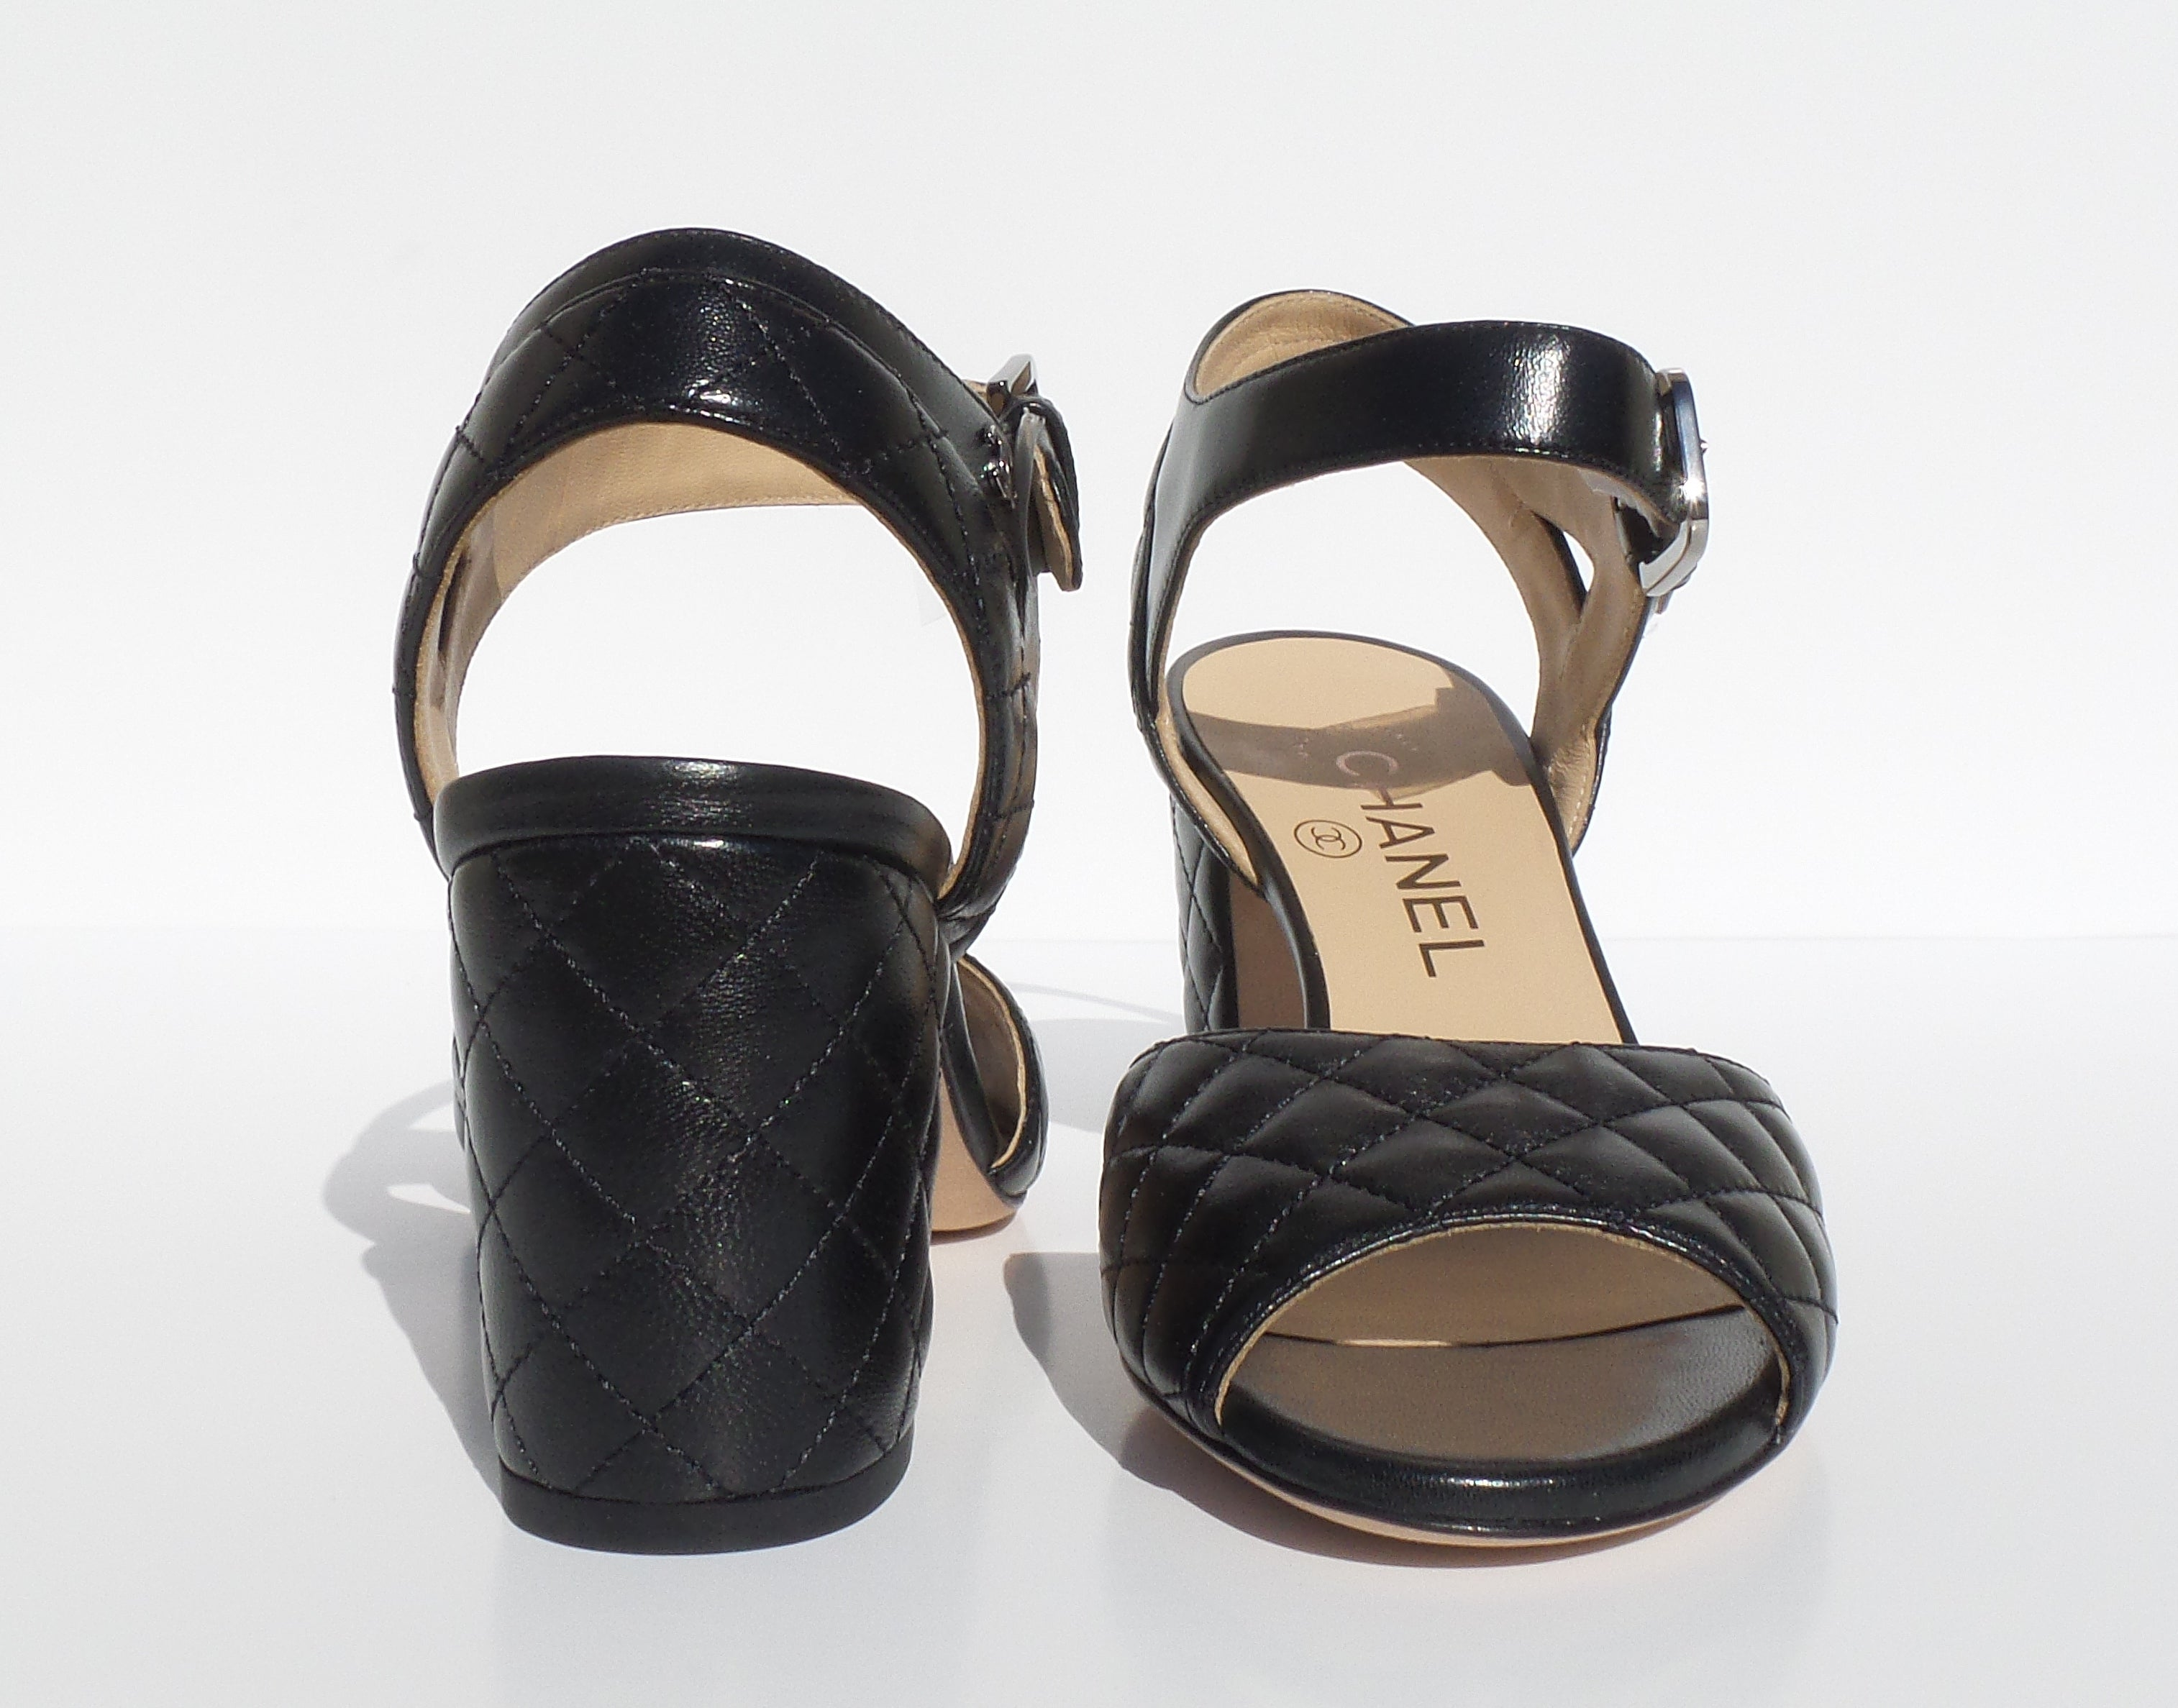 CHANEL 16P Black Quilted Leather Silver CC Ankle Strap Block Heel Sandals 36 NOB